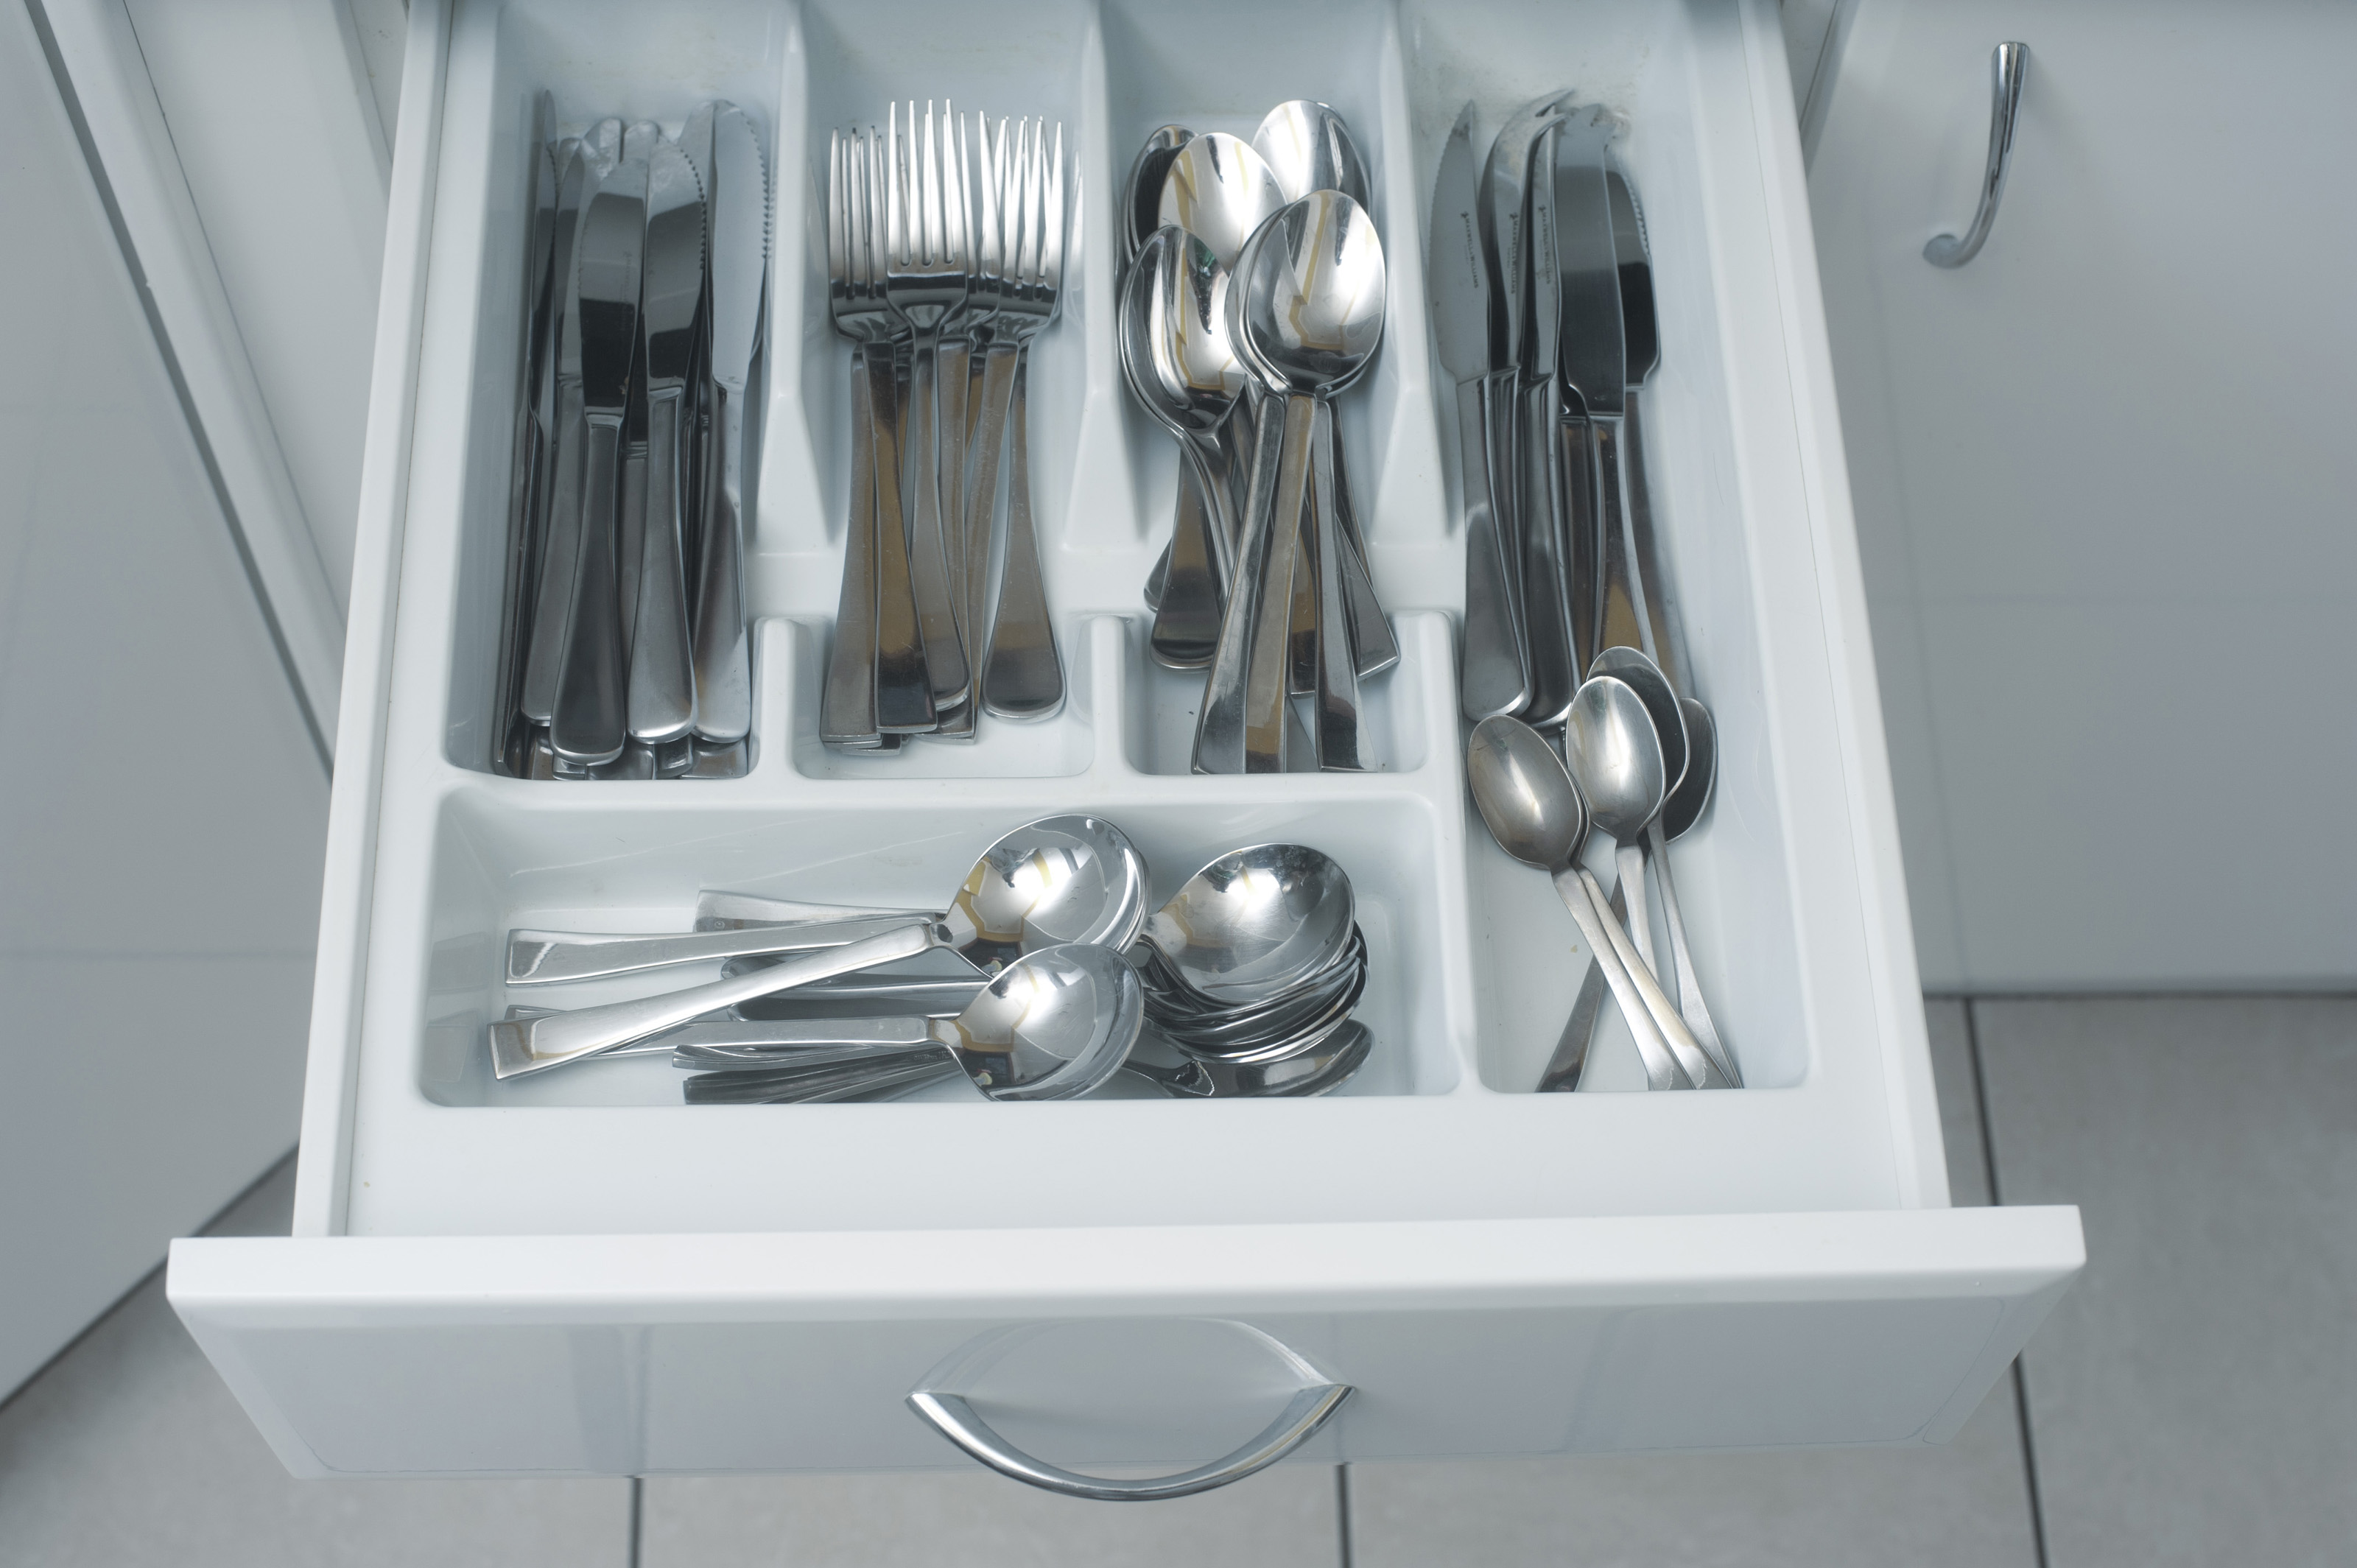 Free Stock Photo 8221 cutlery drawer | freeimageslive